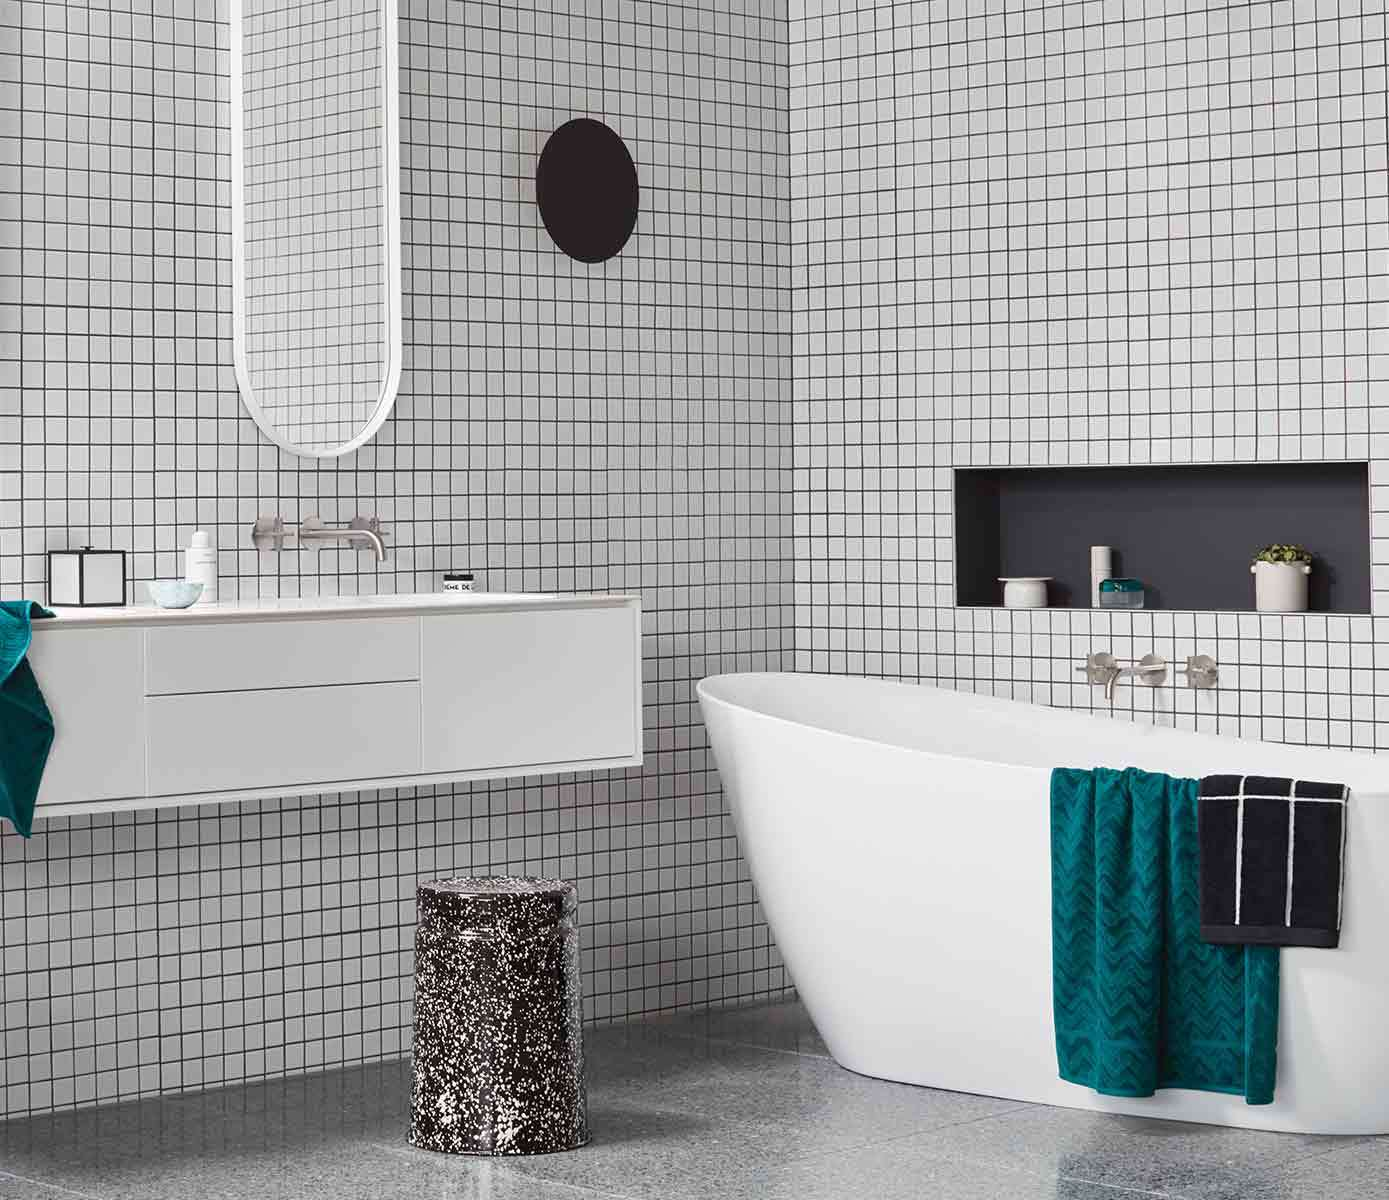 Right Tile Combinations In The Bathroom, Selecting Bathroom Tile